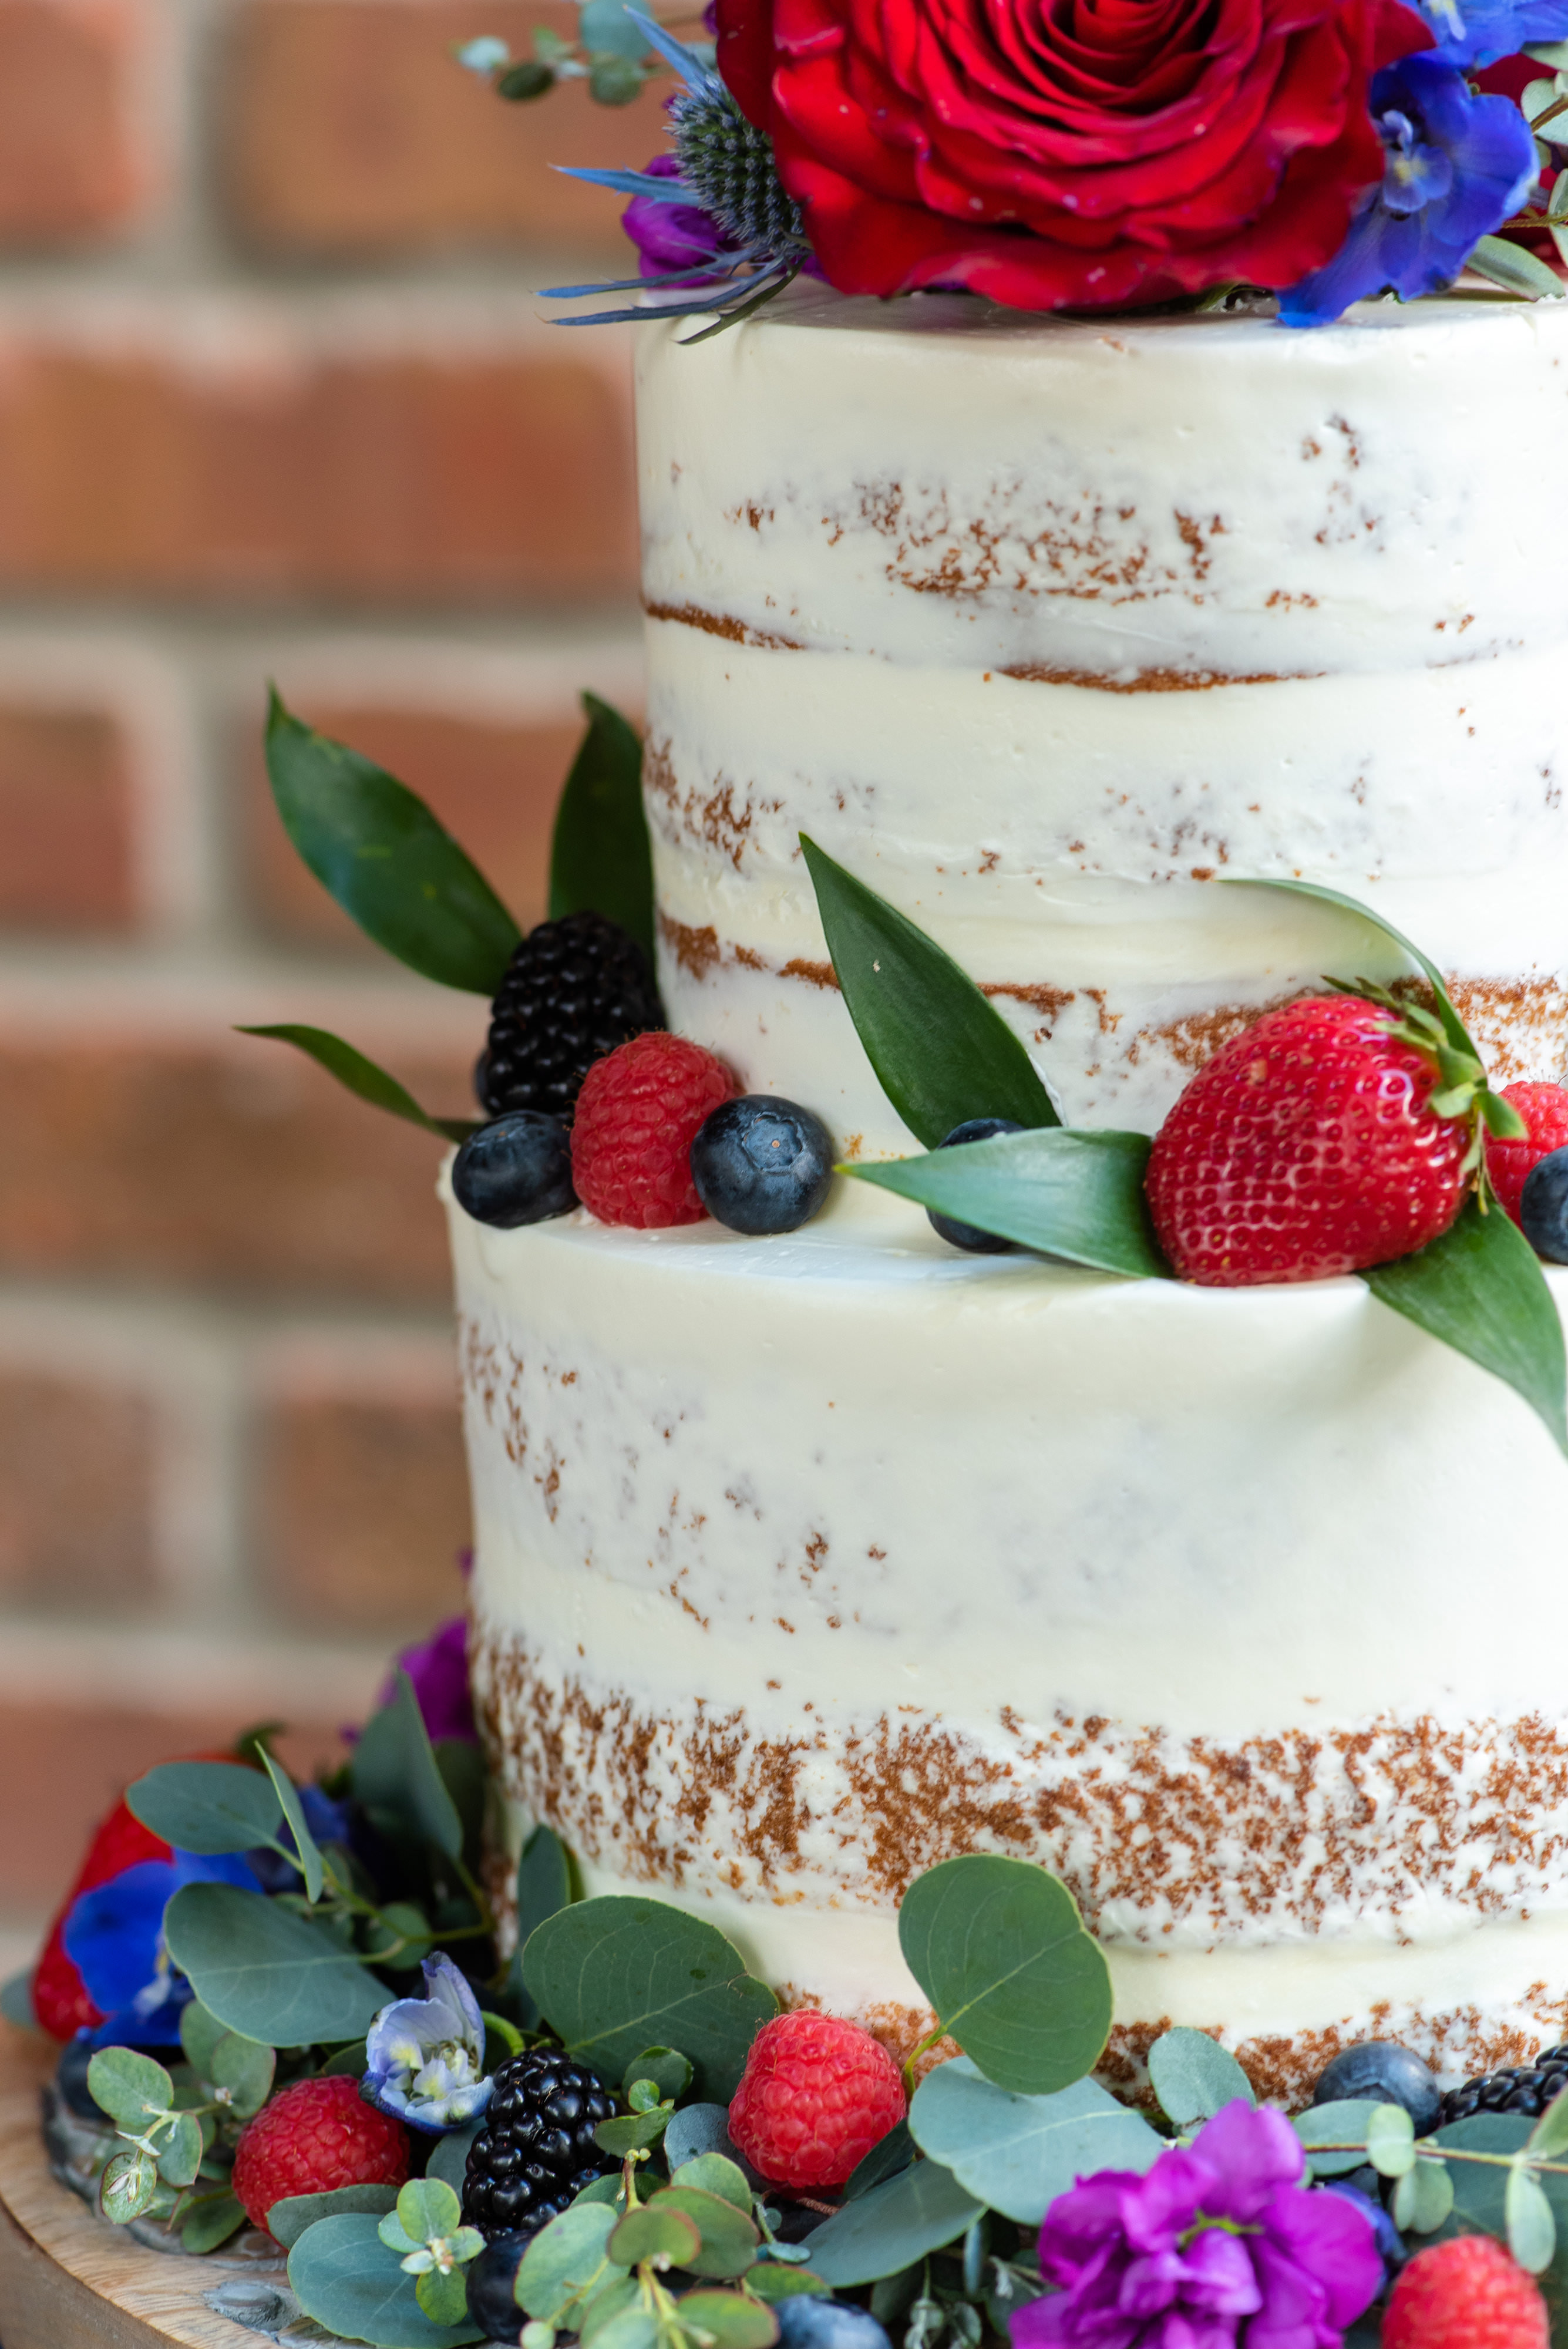 Two Tier Rustic Semi Naked Wedding Cake with Red, Purple, Pink, Blue and Greenery Real Flower Decor | Tampa Bay Wedding Photographer Caroline and Evan Photography | Florist Monarch Events and Design | Designer and Planner Southern Glam Weddings and Events | Cake Baker Artistic Whisk